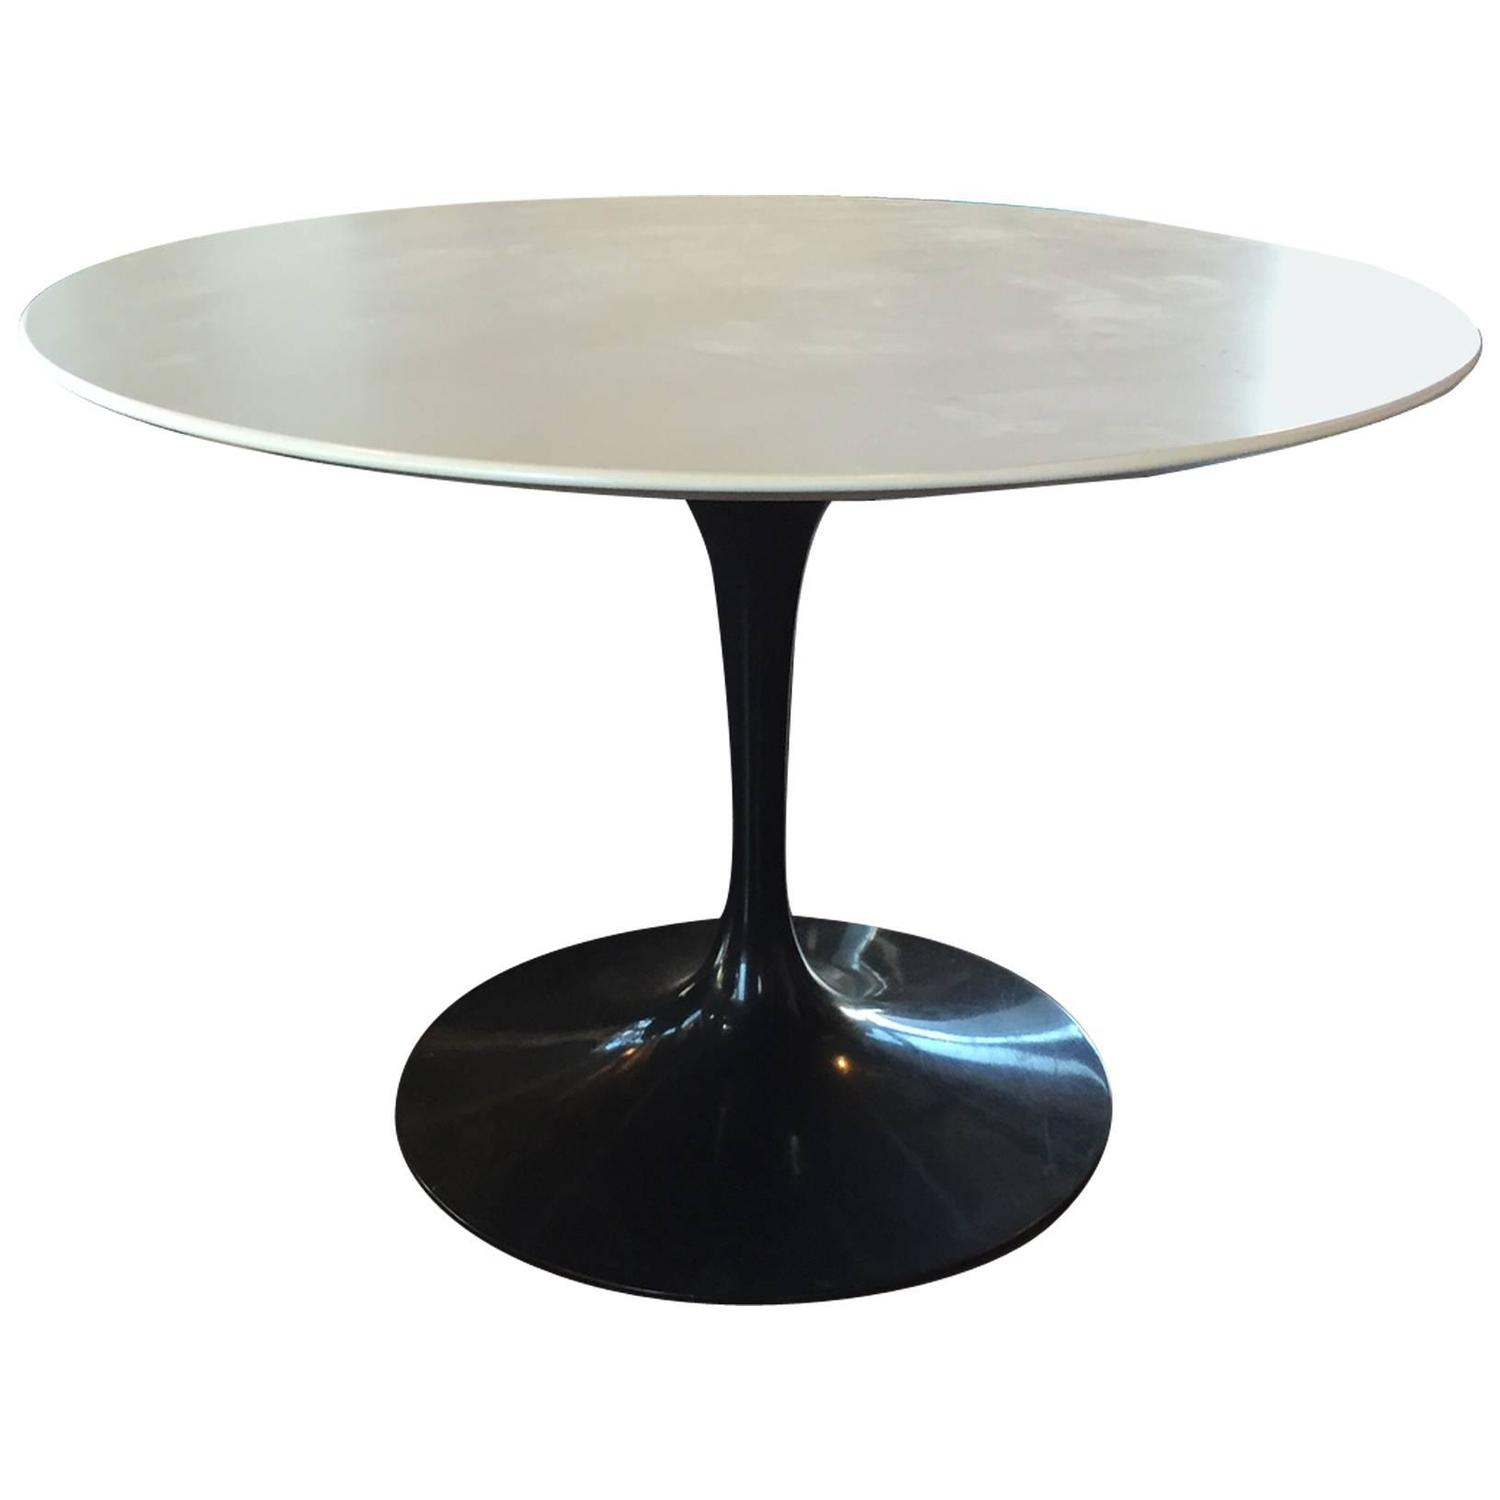 Eero saarinen for knoll tulip dining table at 1stdibs for Tulip dining table